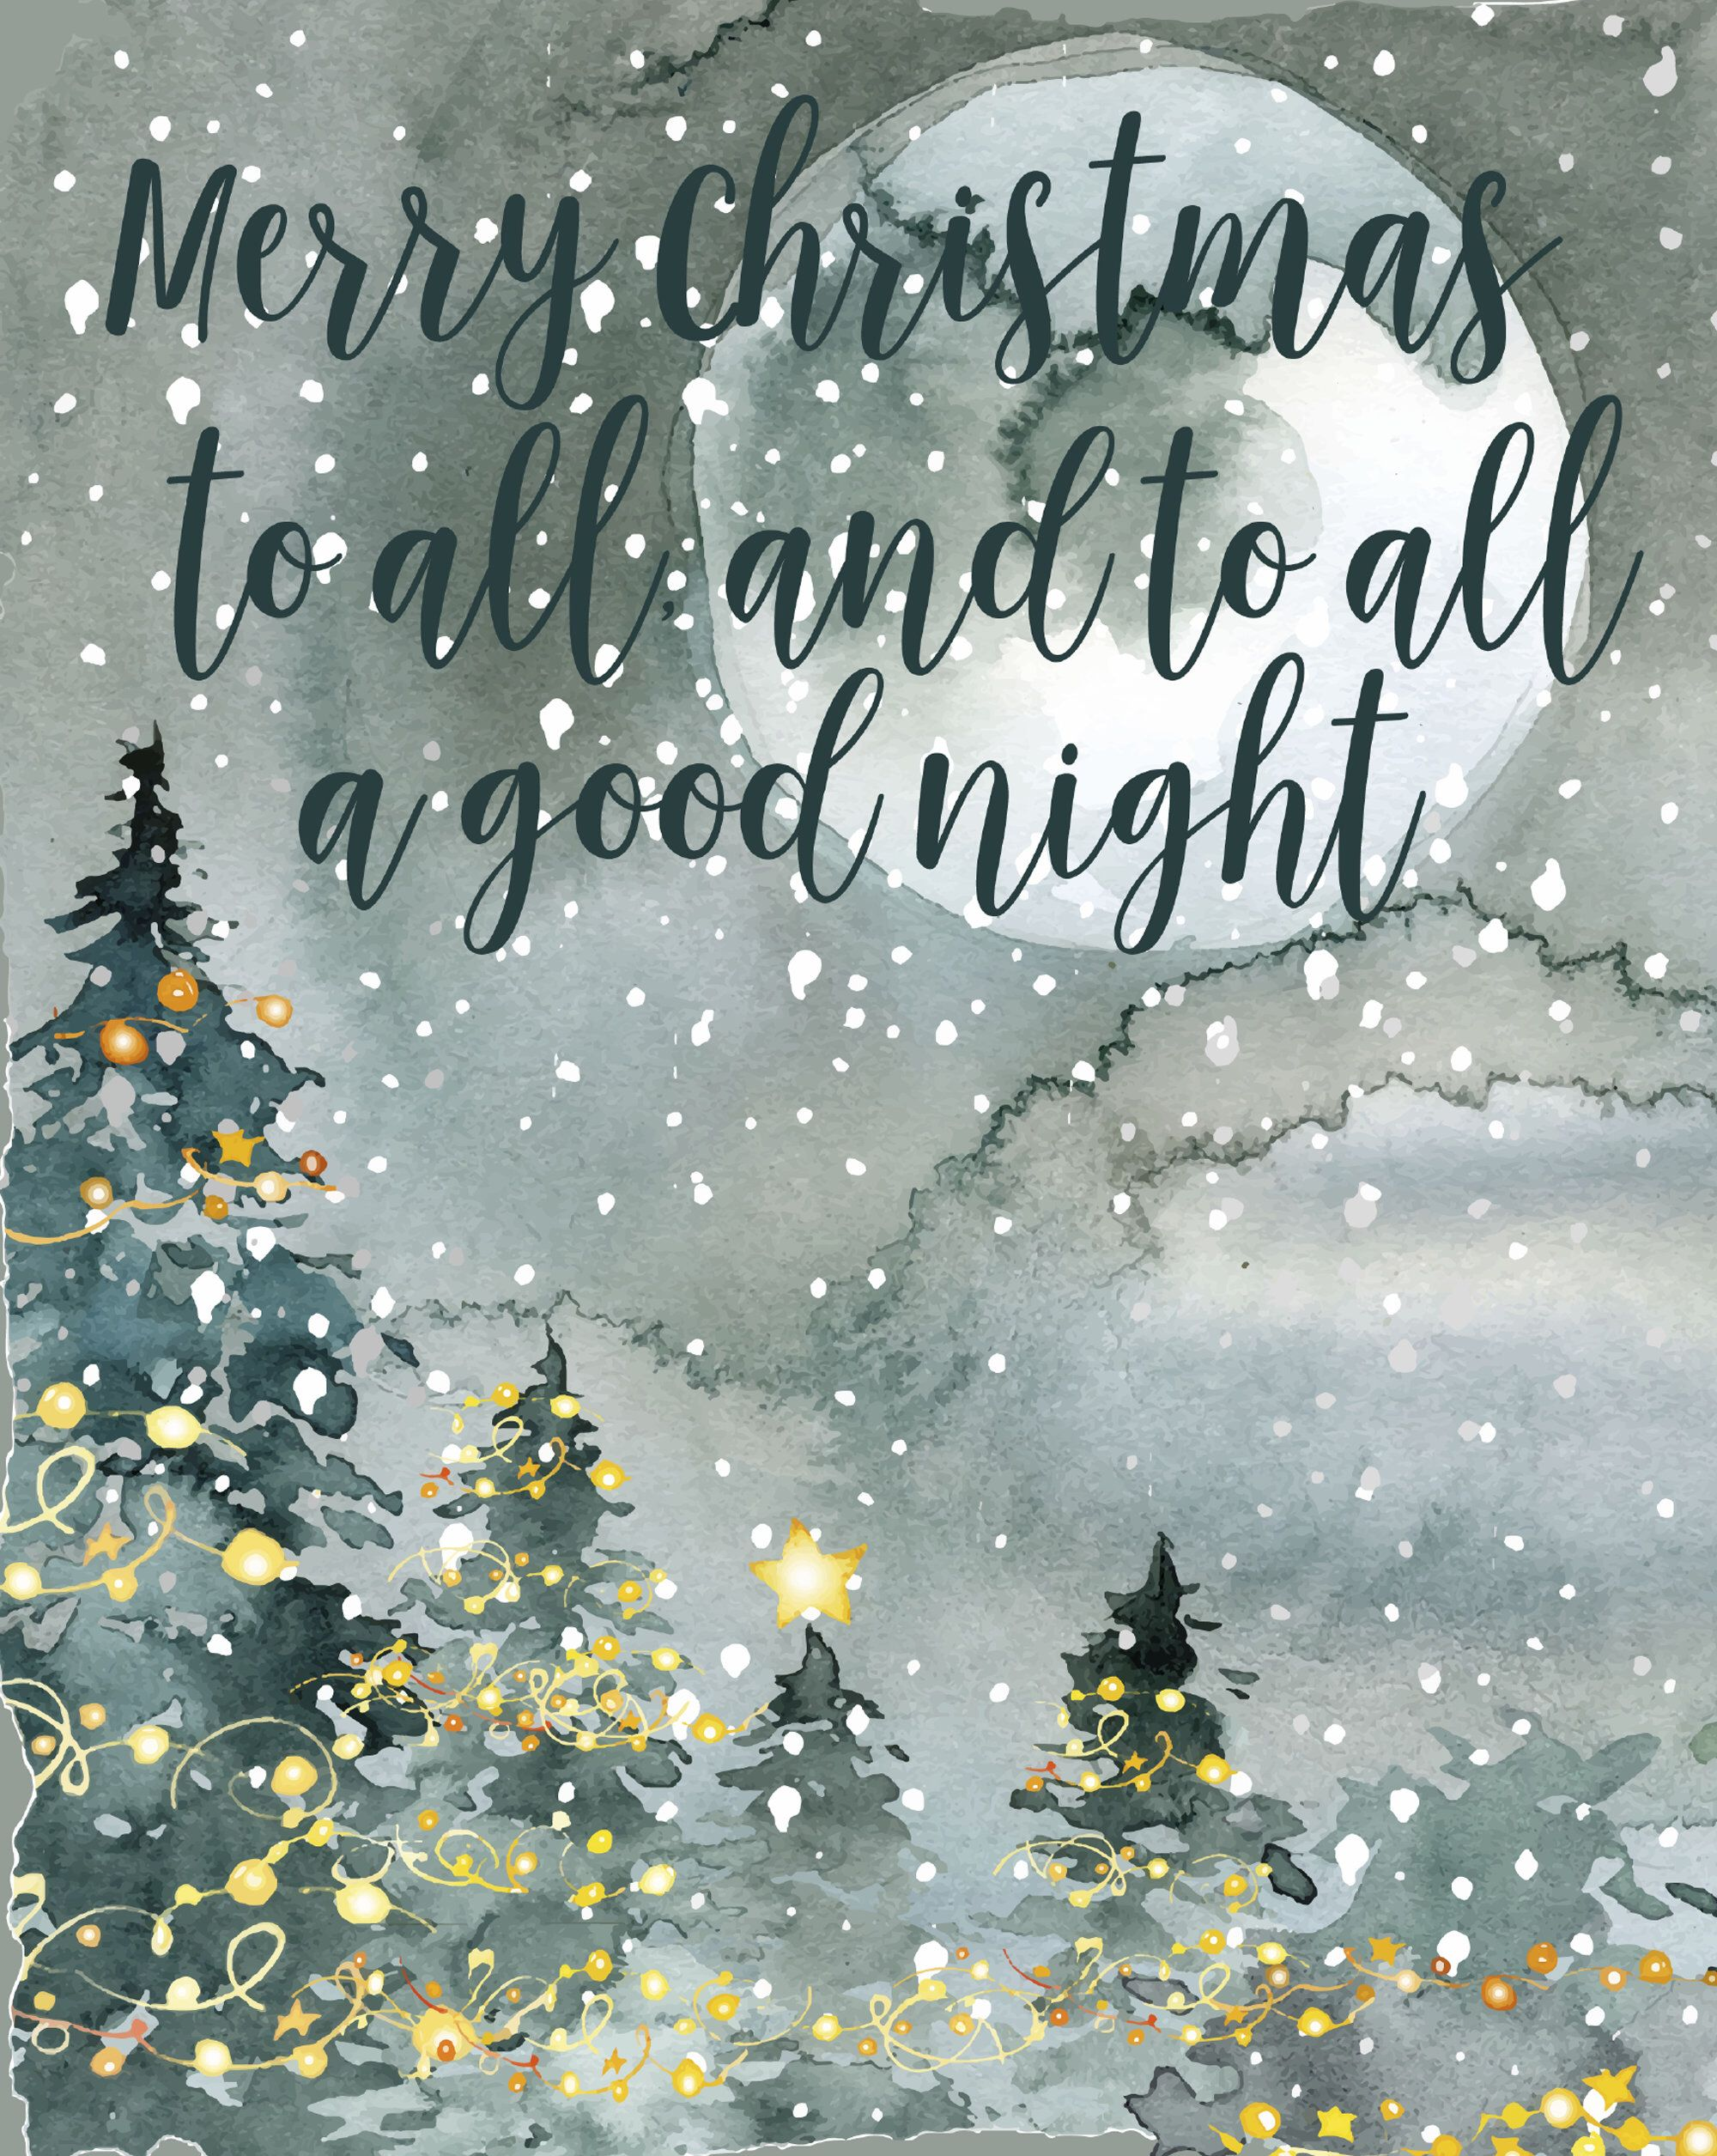 Merry Christmas To All And To All A Good Night Christmas Etsy Christmas Lights Quotes Christmas Calligraphy Christmas Scenery